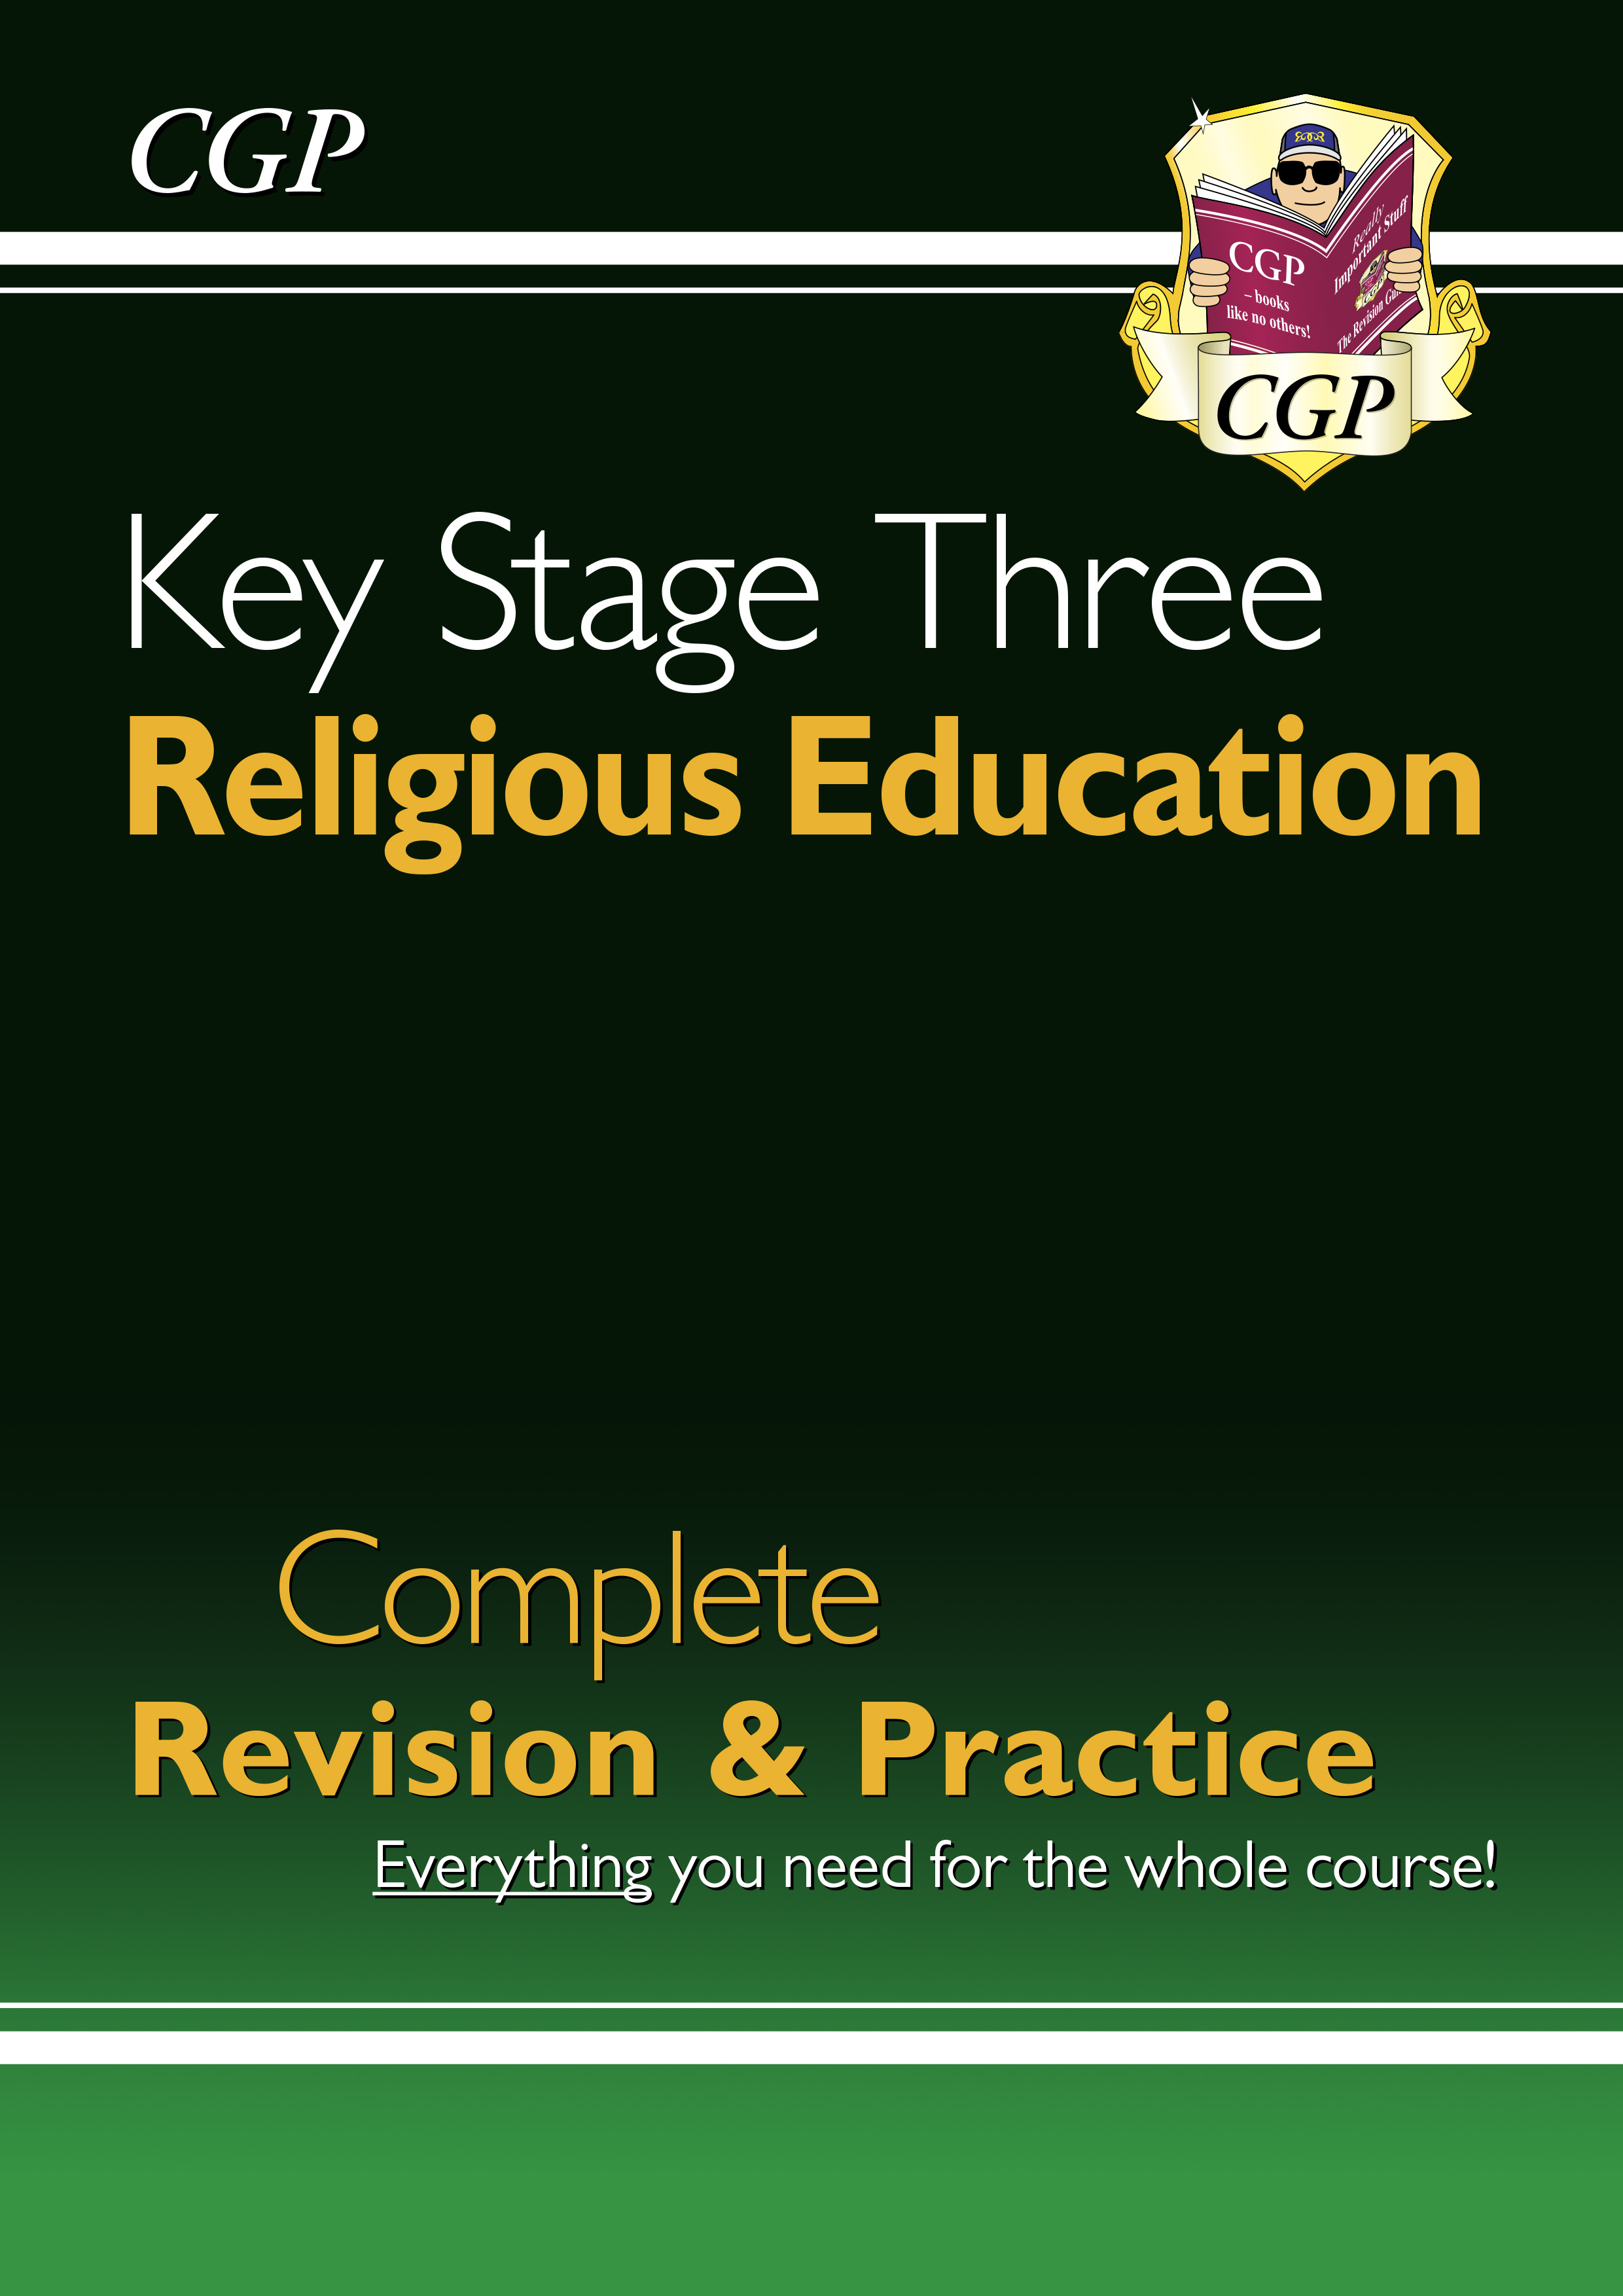 RHS32DK - New KS3 Religious Education Complete Revision & Practice